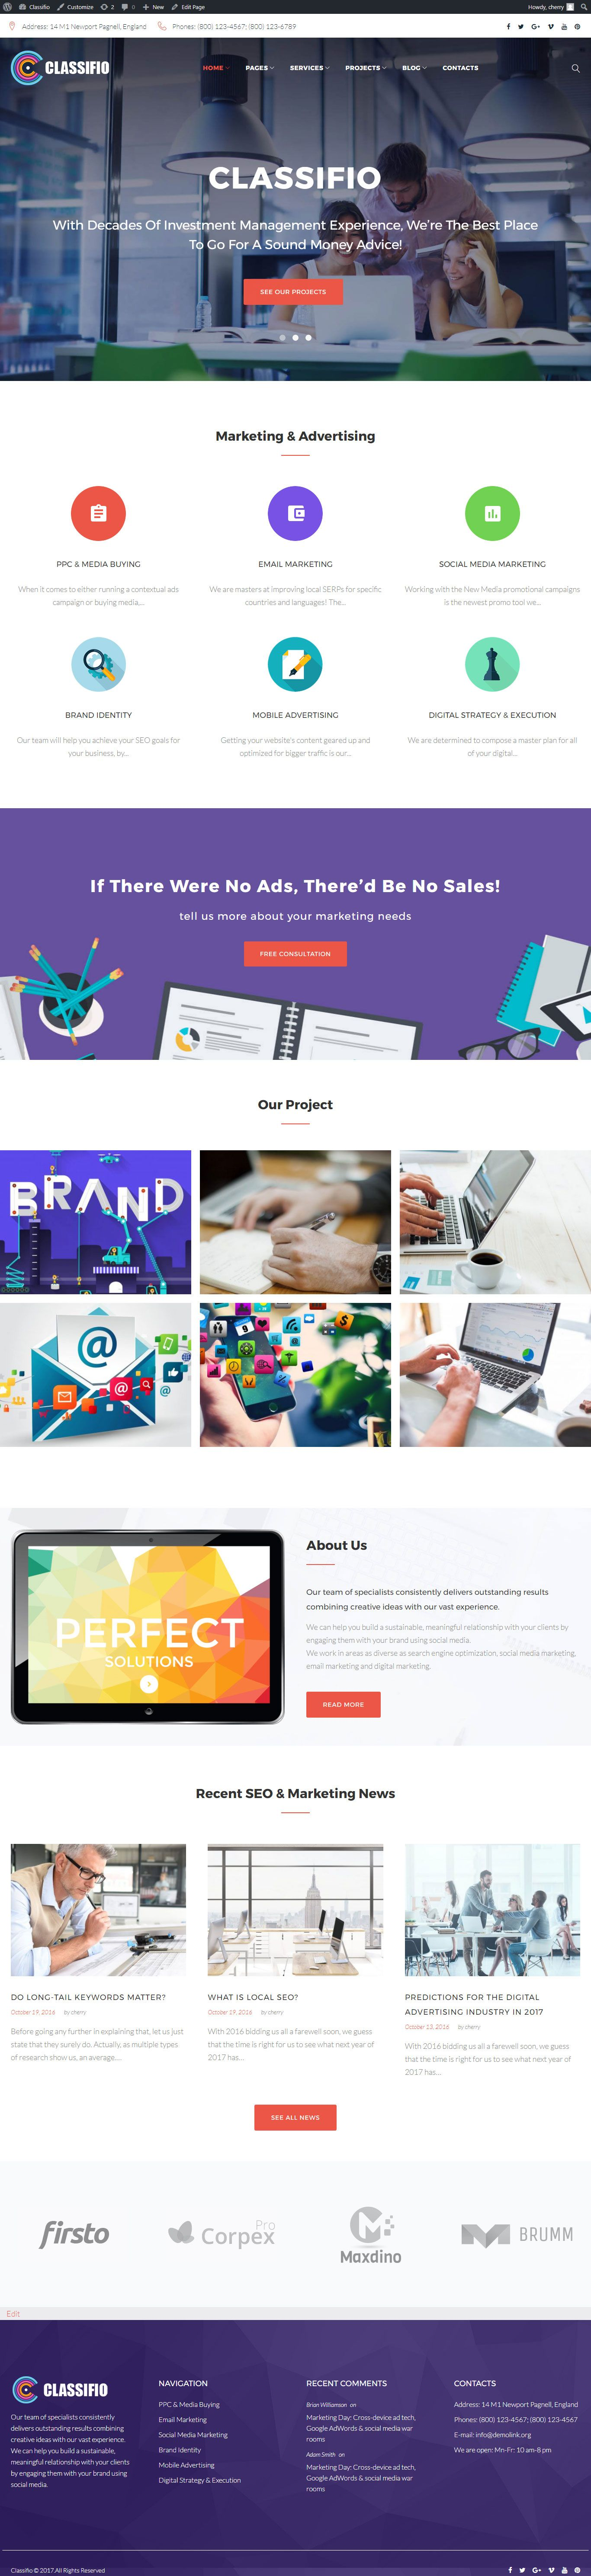 Cherry - Multi Purpose WordPress Theme Screenshot 7